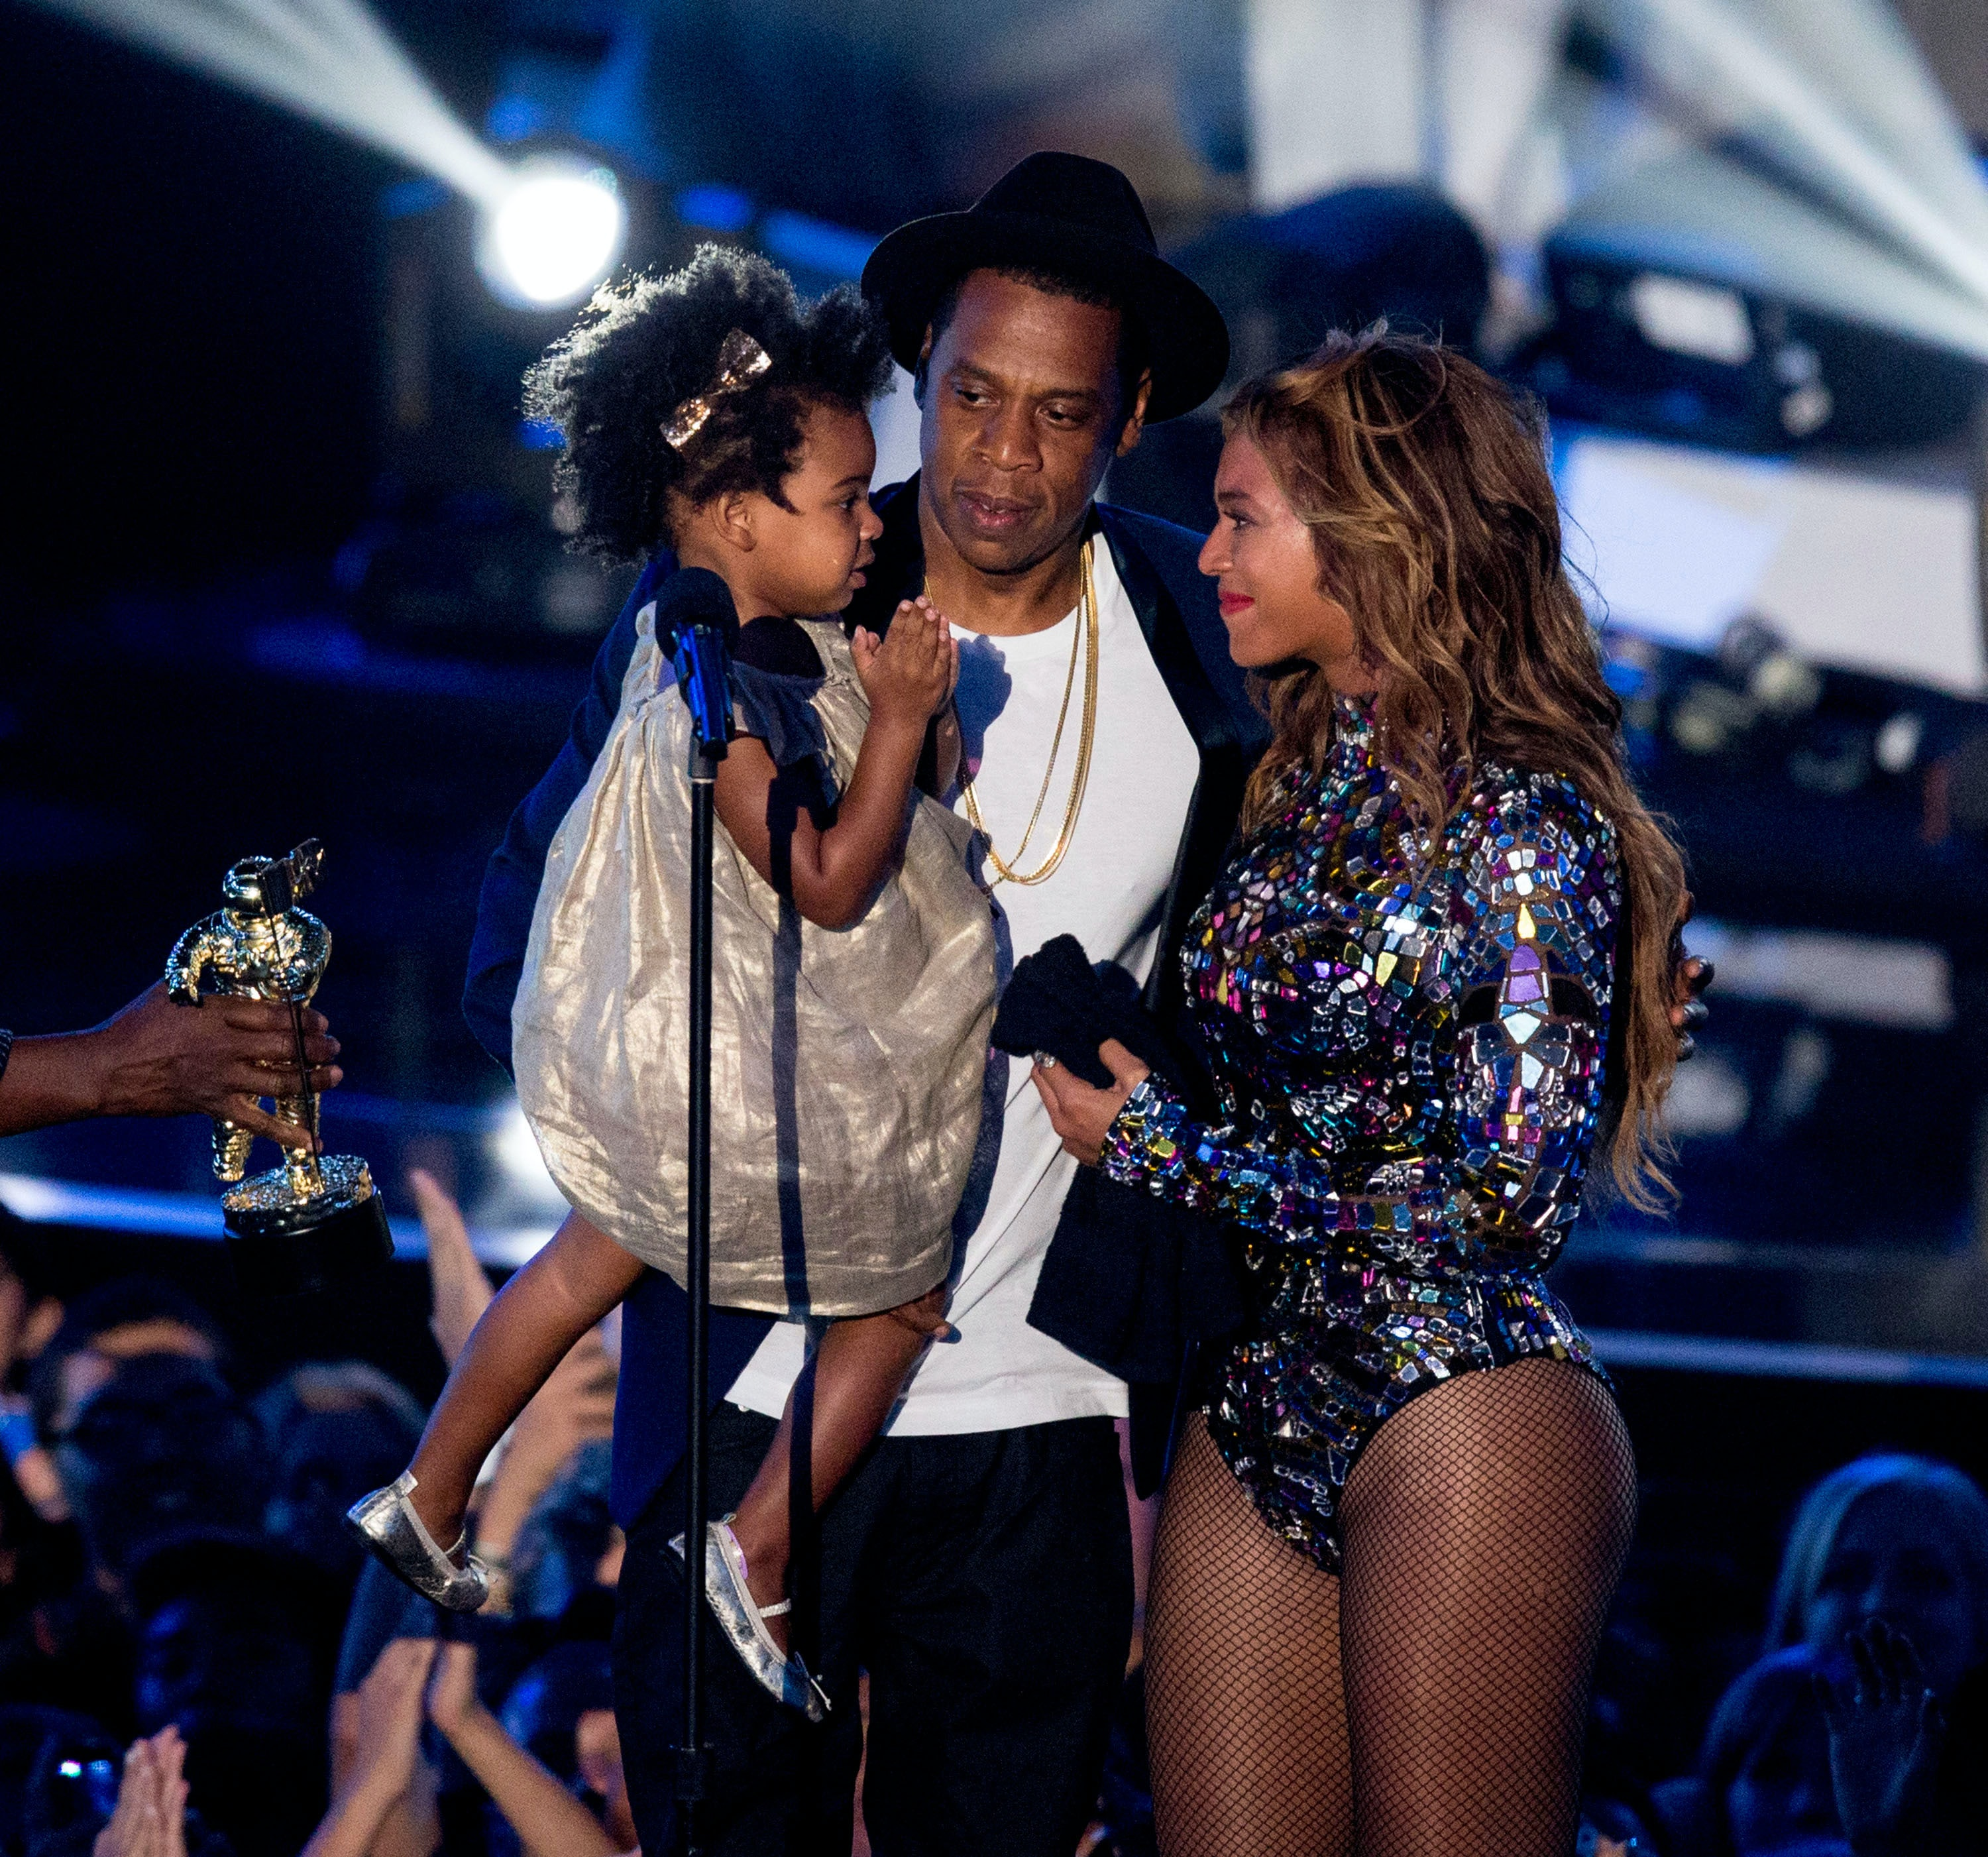 Blue Ivy Pays an Adorable Tribute to Prince in Gucci